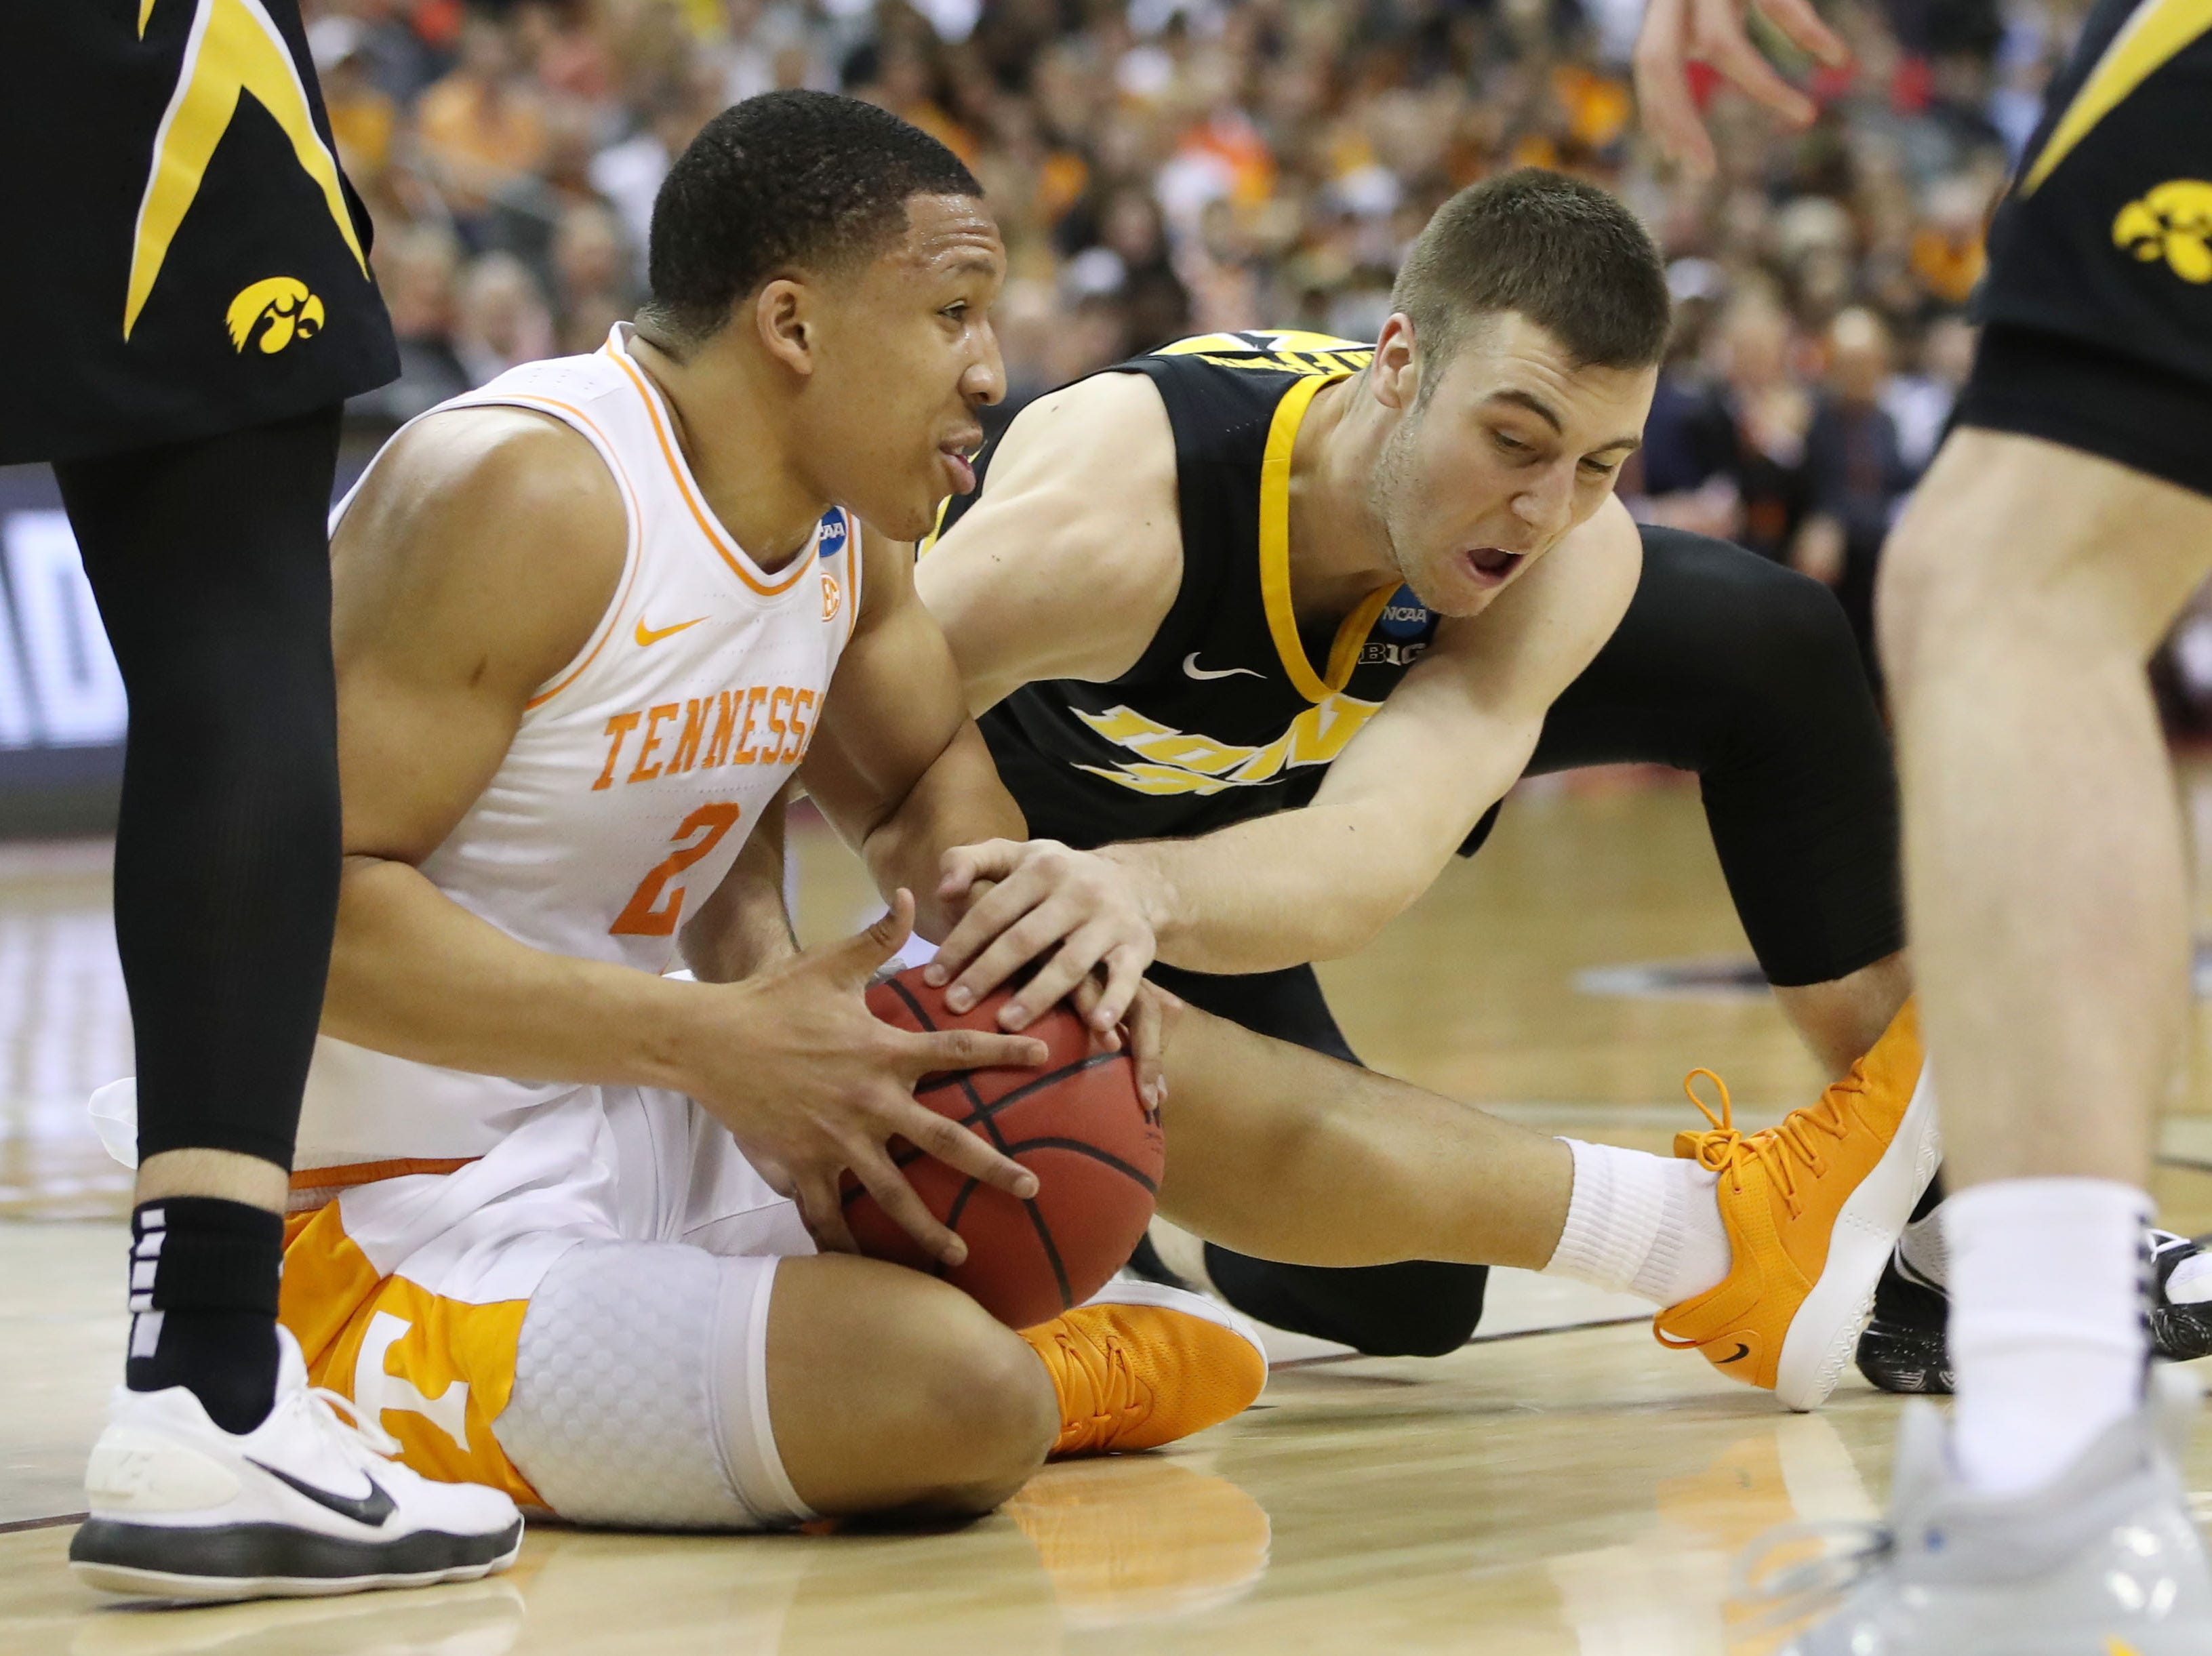 Tennessee Volunteers forward Grant Williams (2) and Iowa Hawkeyes guard Connor McCaffery (30) battle for the ball in the first half in the second round of the 2019 NCAA Tournament at Nationwide Arena.